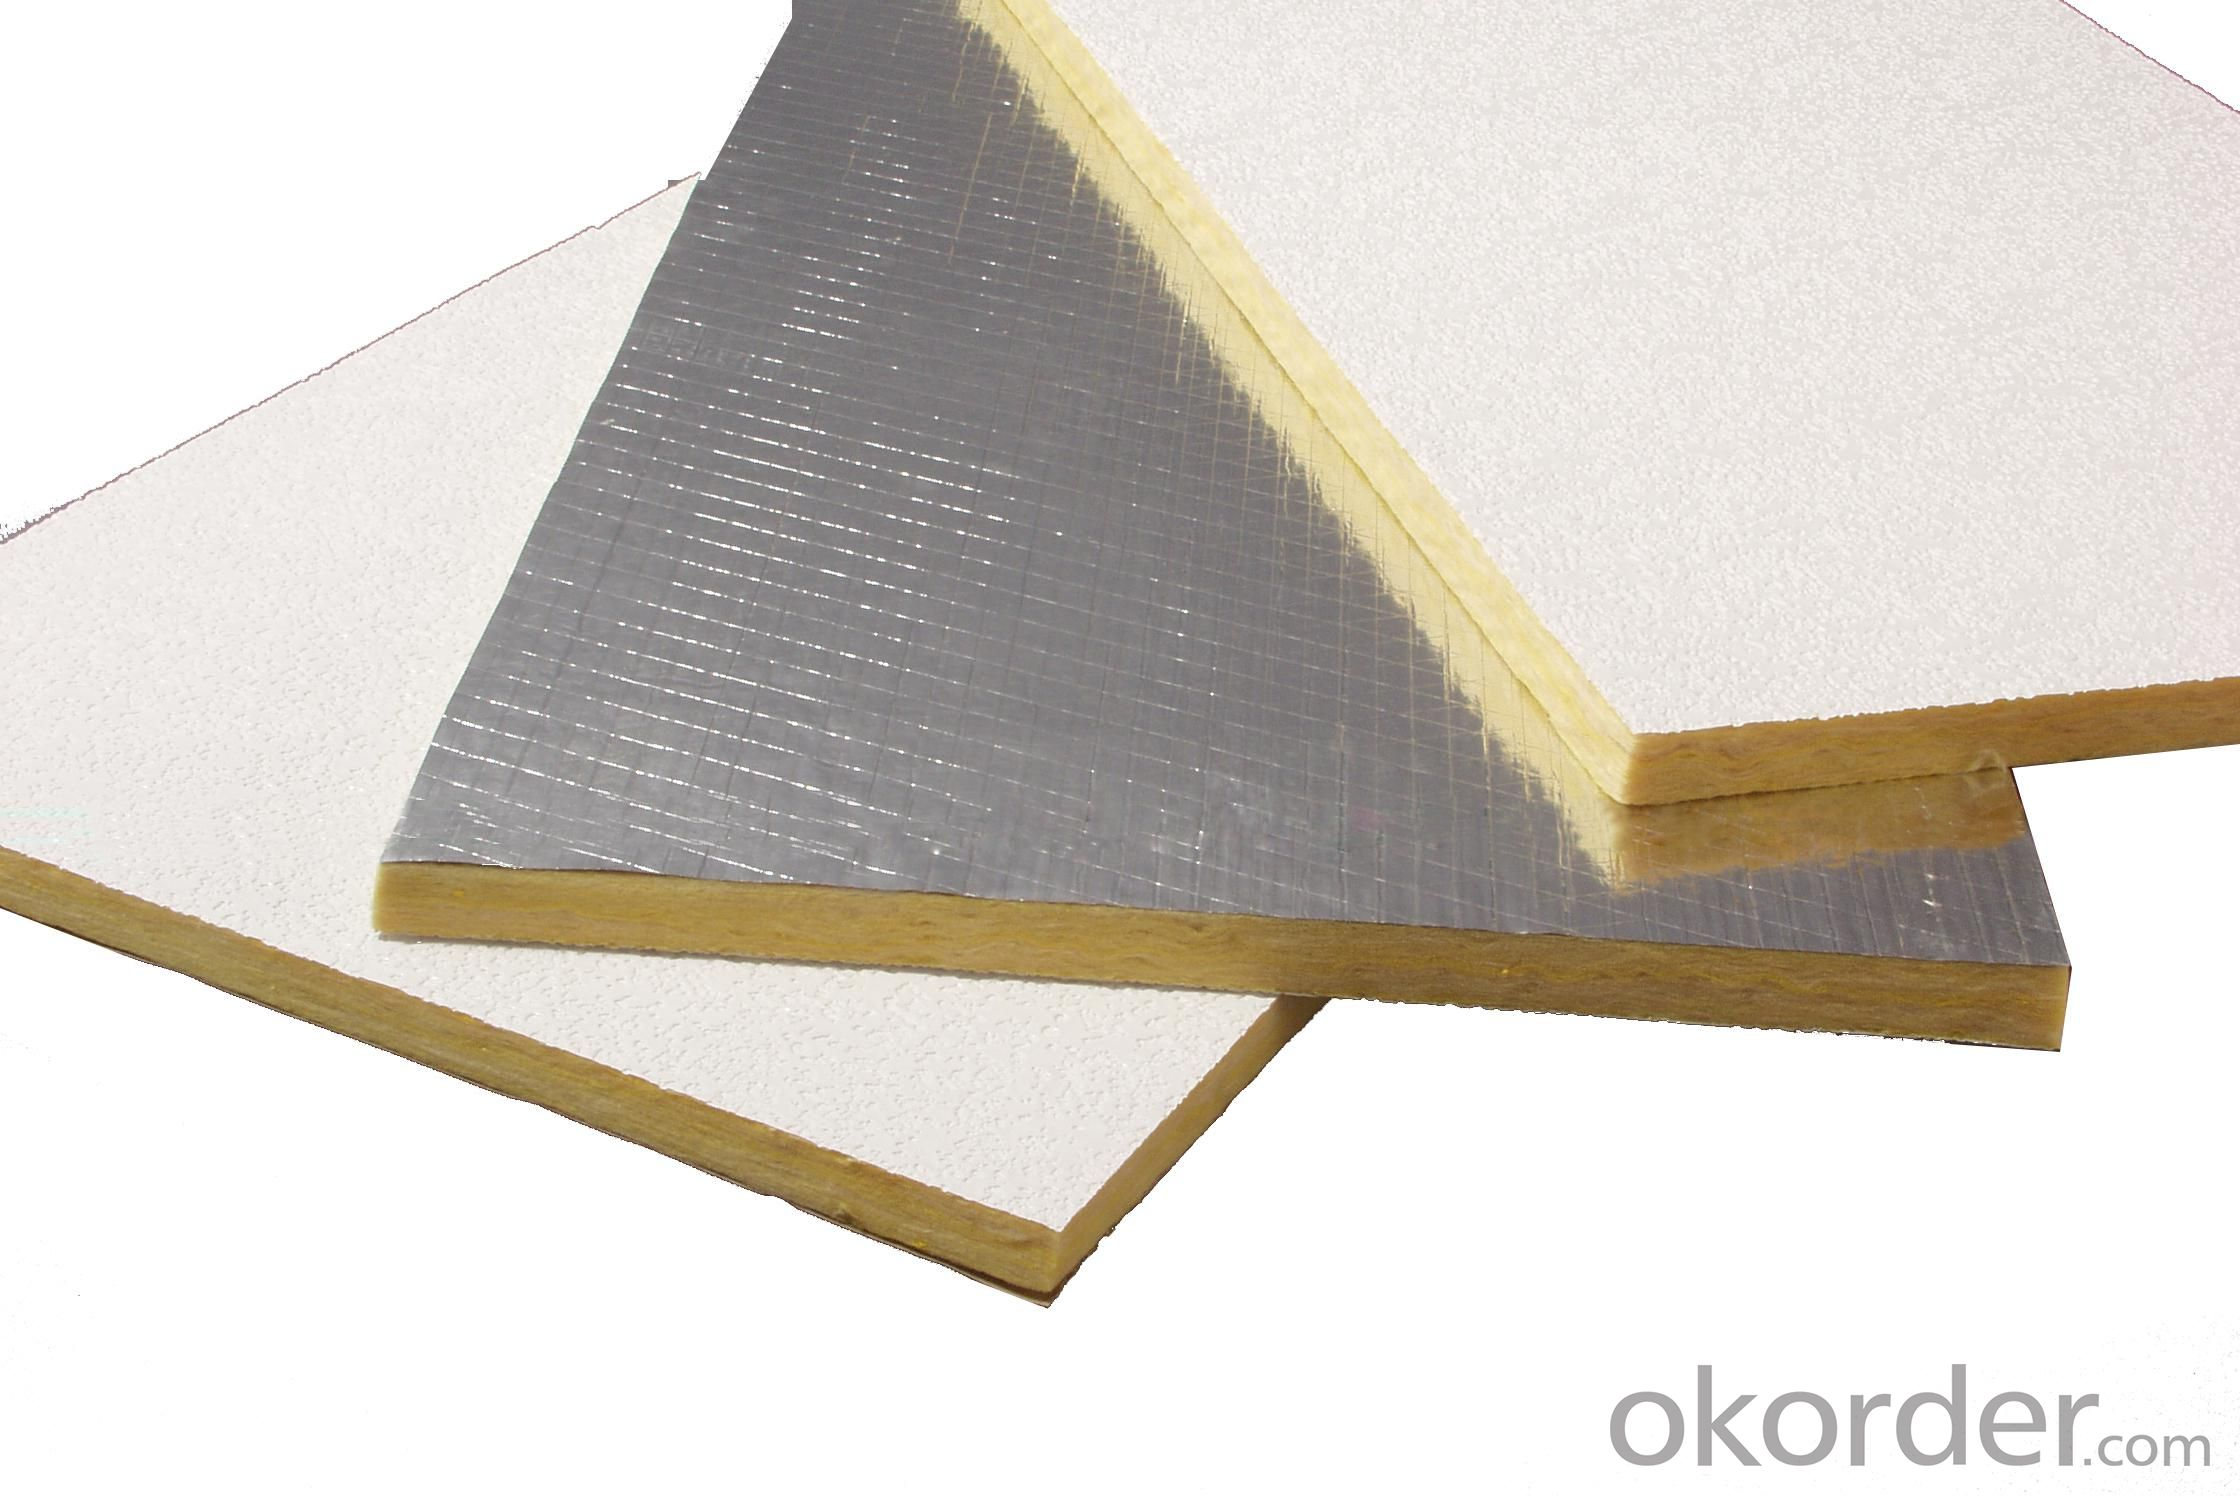 Thermal Insulation And fireproof thermal conductivity glass wool insulation glass wool